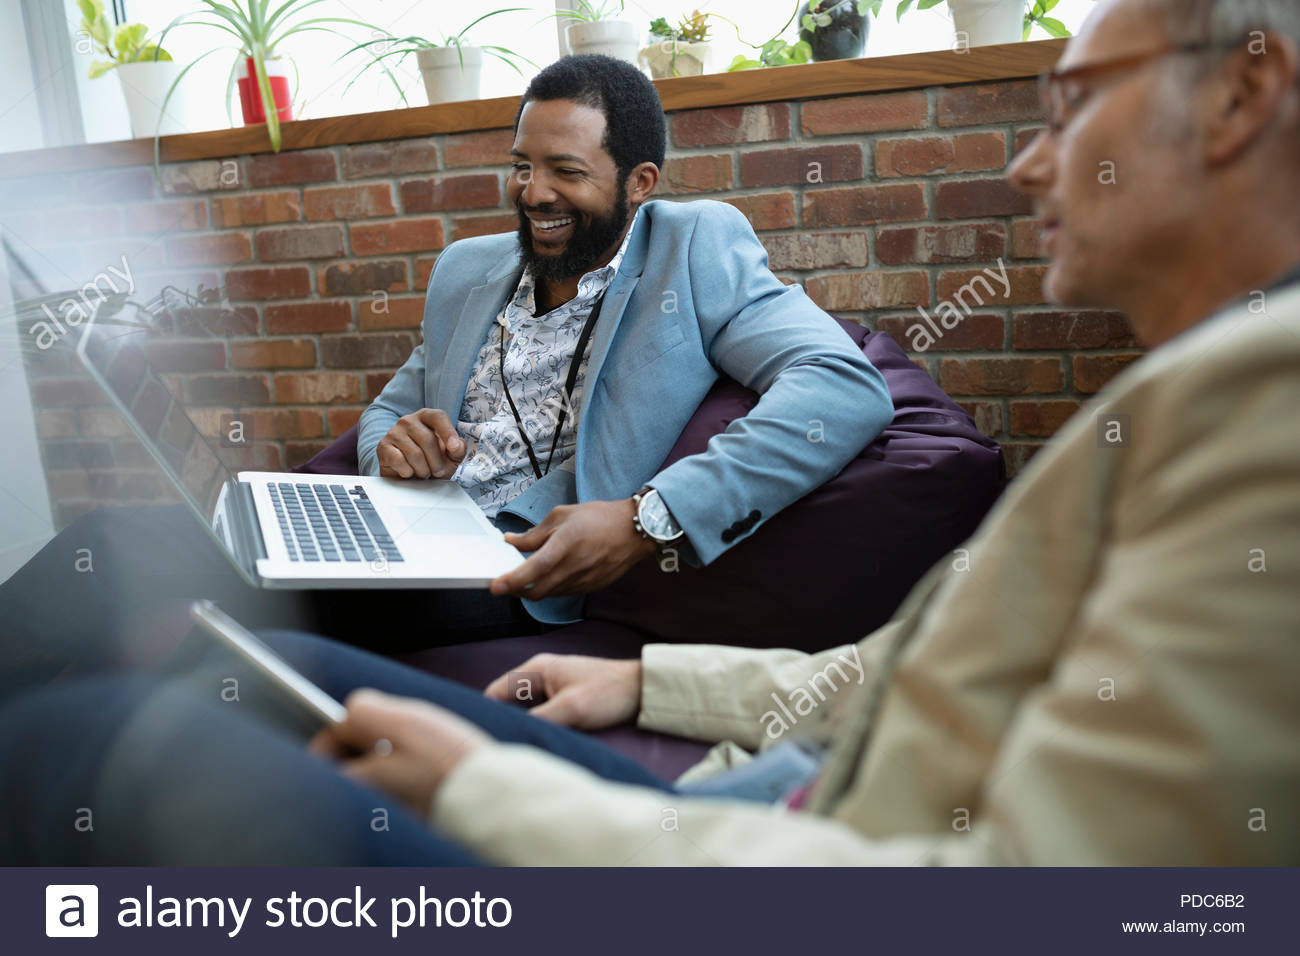 Smiling creative businessmen using digital tablet and laptop on beanbags in office - Stock Image